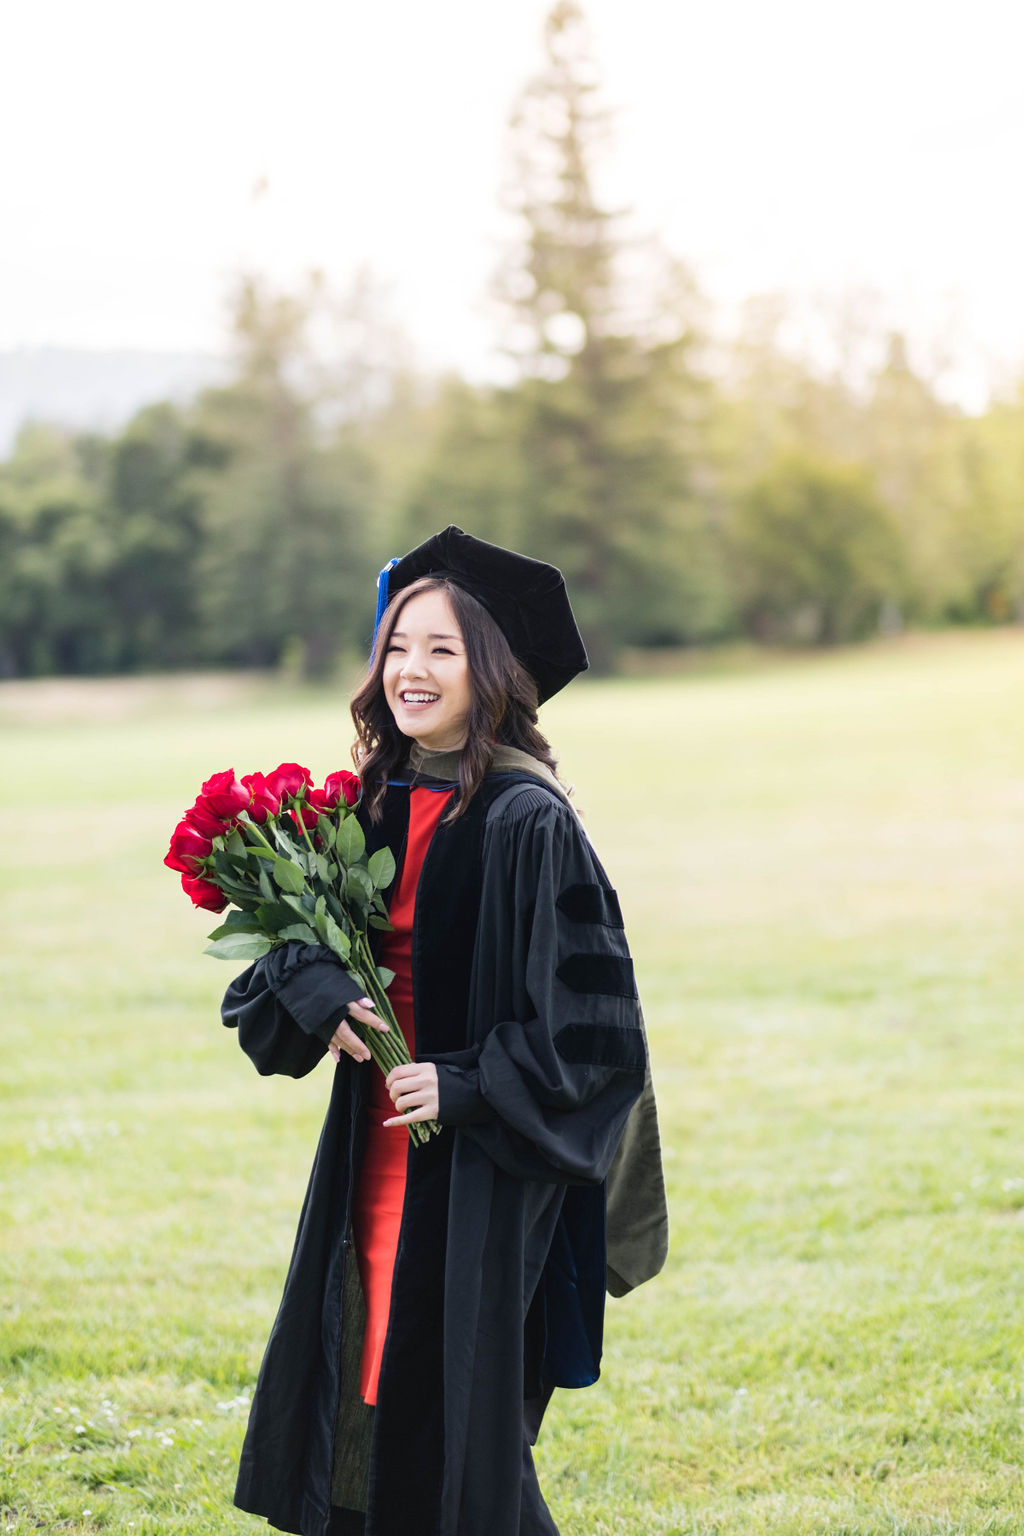 college graduate holding bouquet of red roses